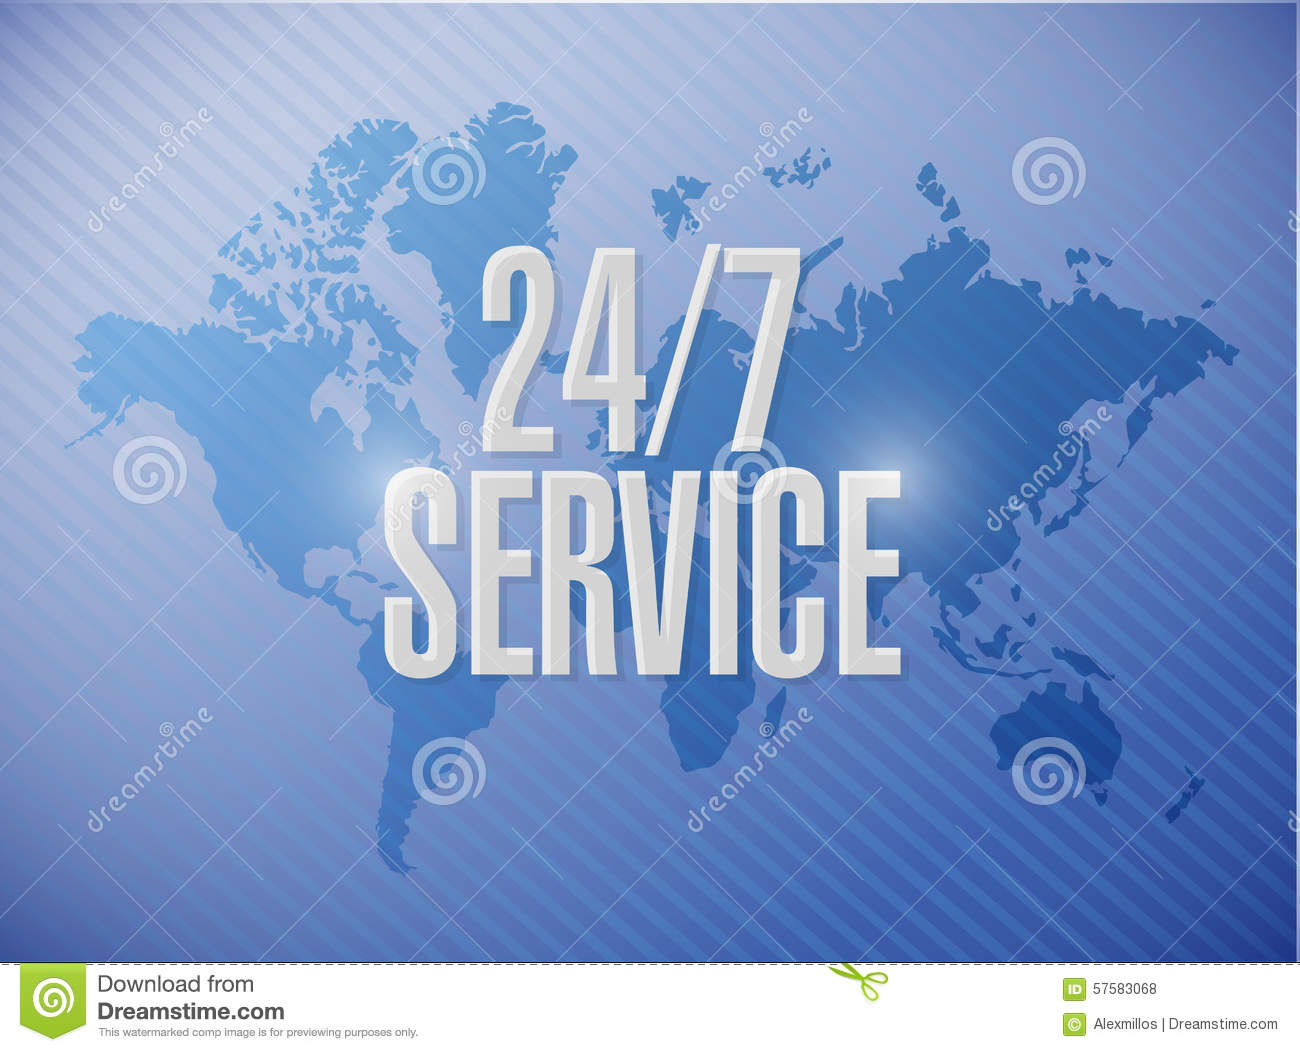 24 7 service world map sign concept stock illustration 24 7 service world map sign concept illustration design icon graphic gumiabroncs Choice Image